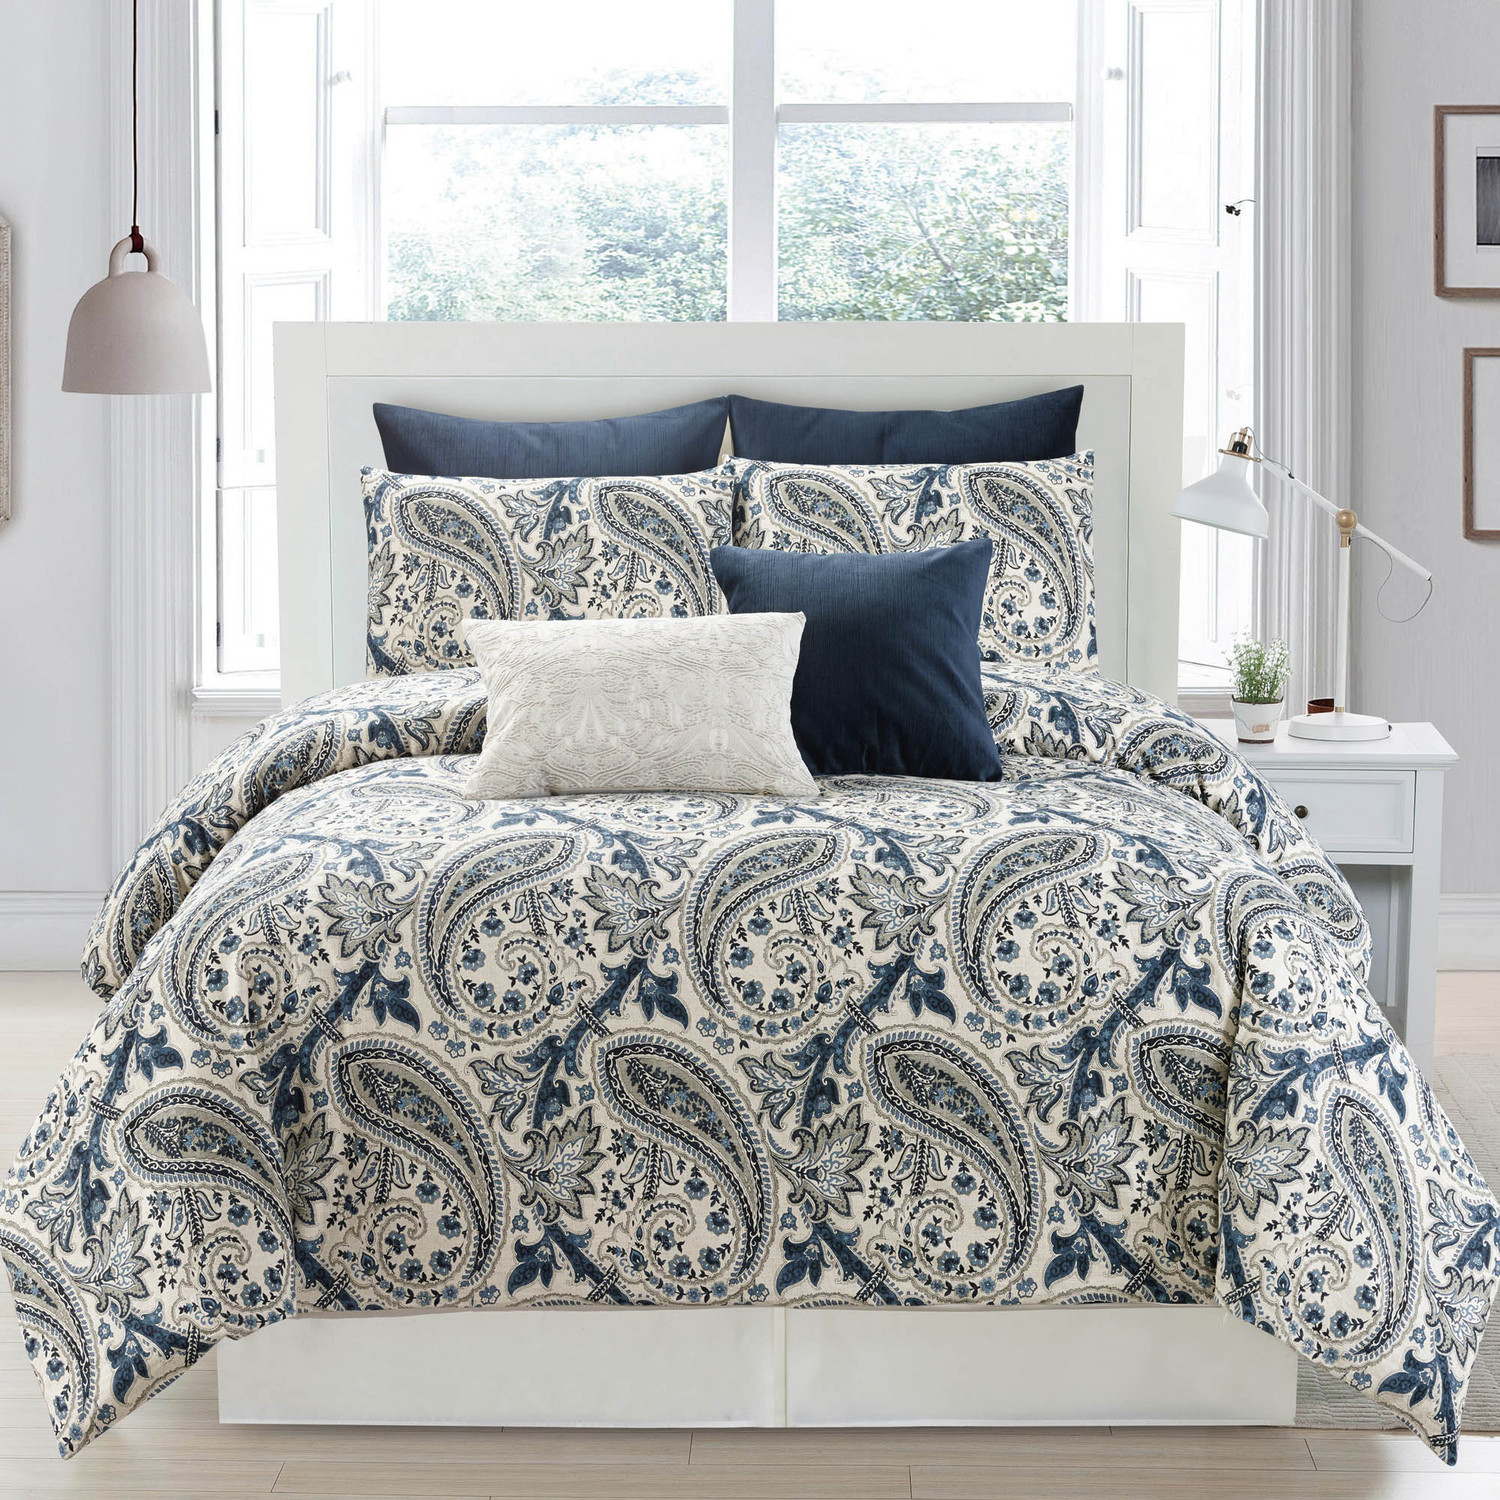 Bastian by Riverbrook Home Bedding